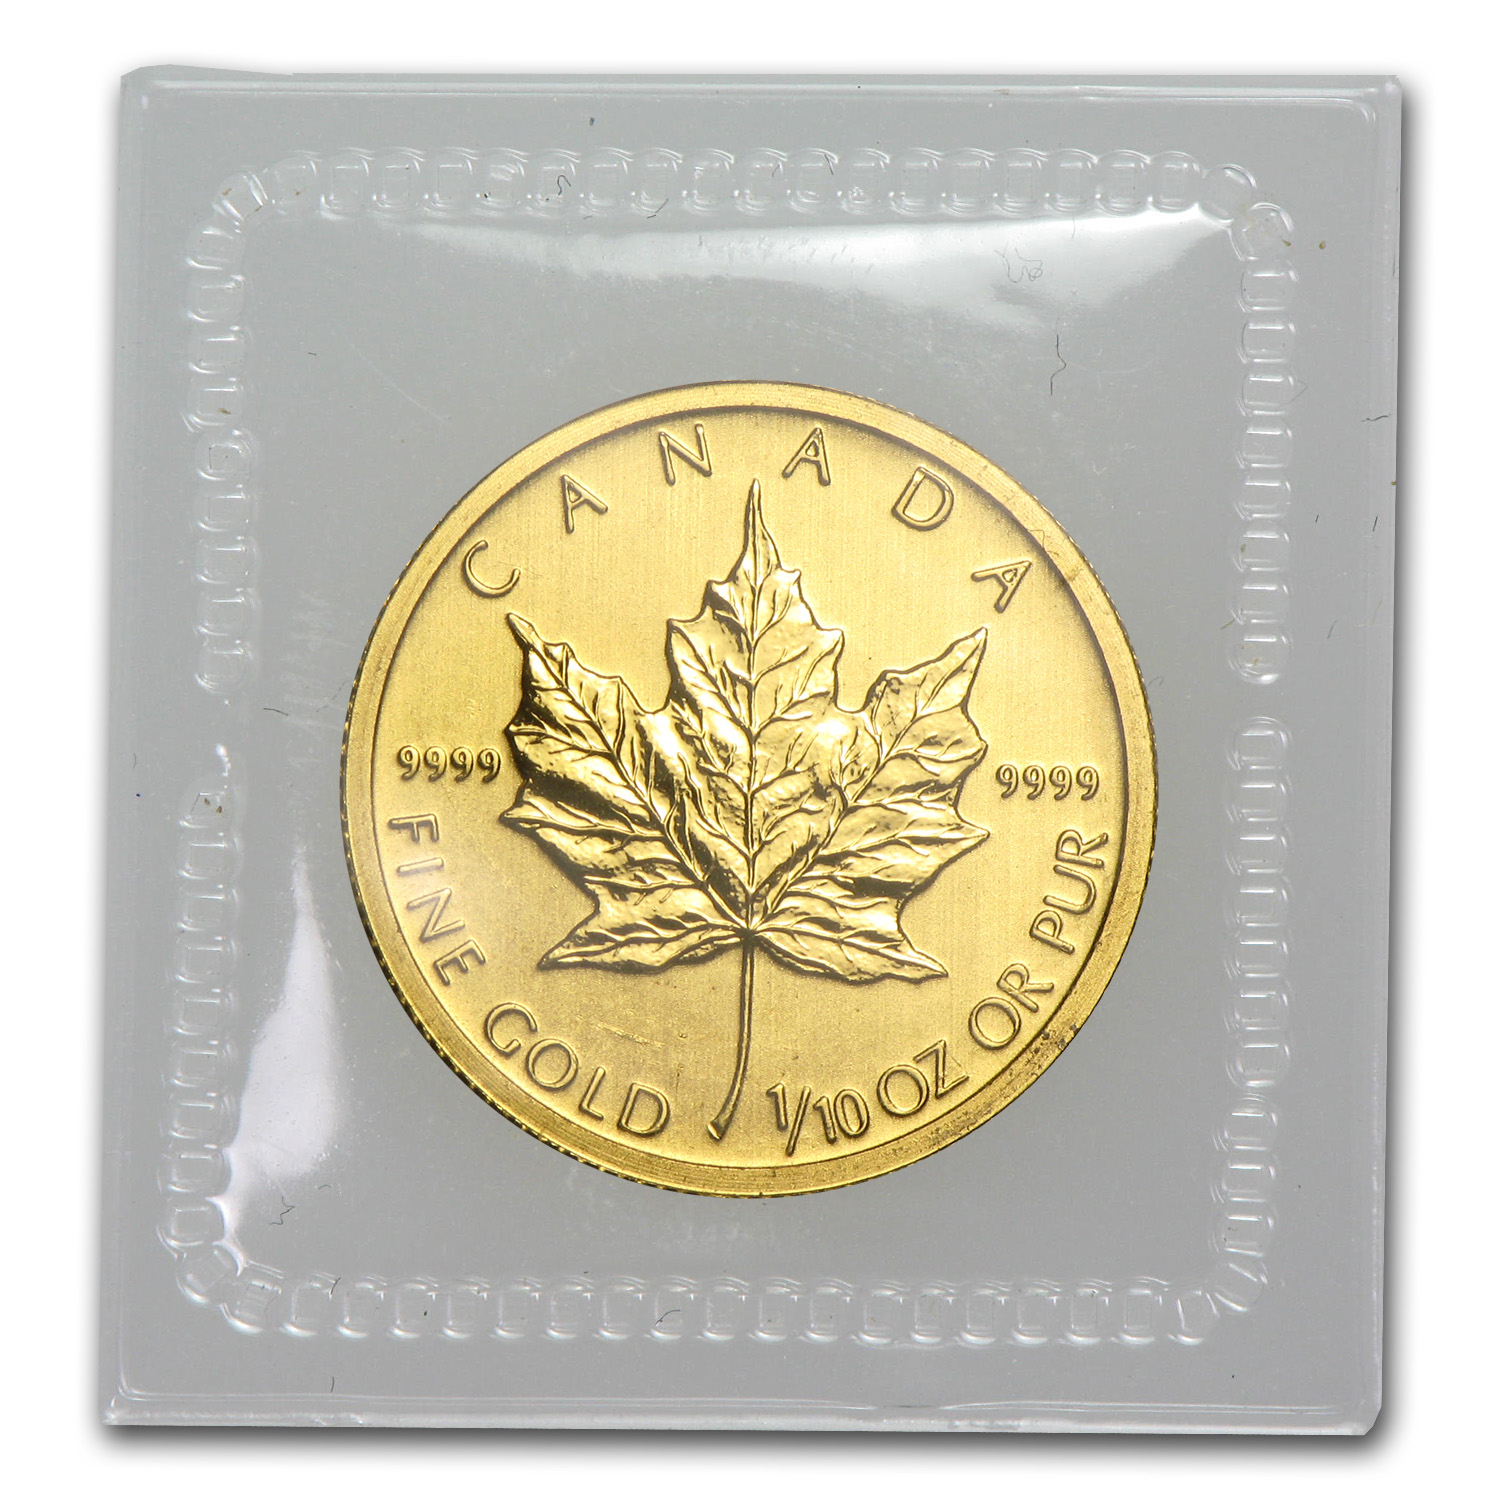 2011 1/10 oz Gold Canadian Maple Leaf